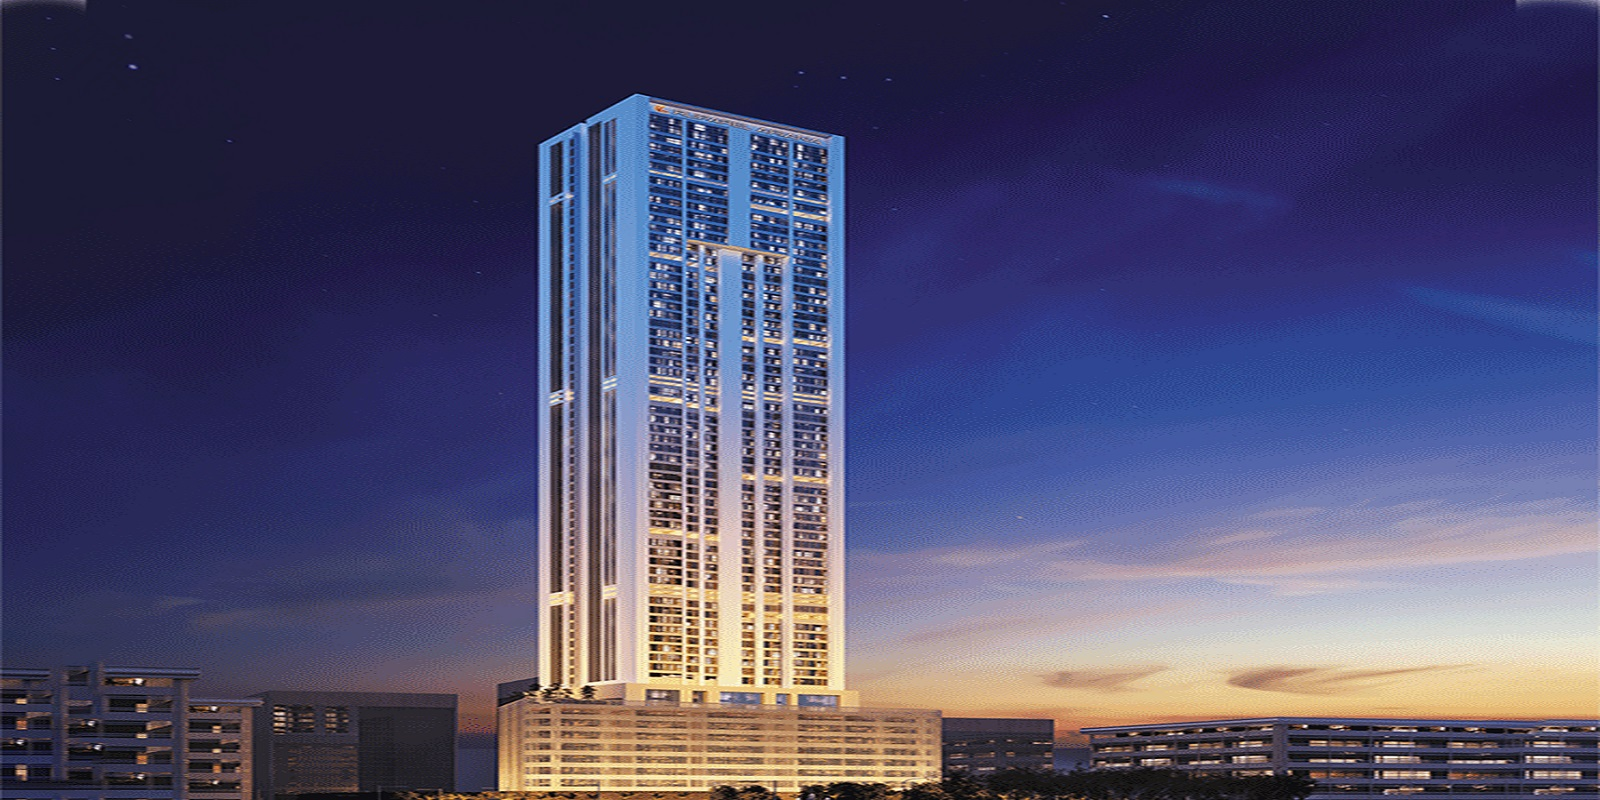 ruparel ariana project large image3